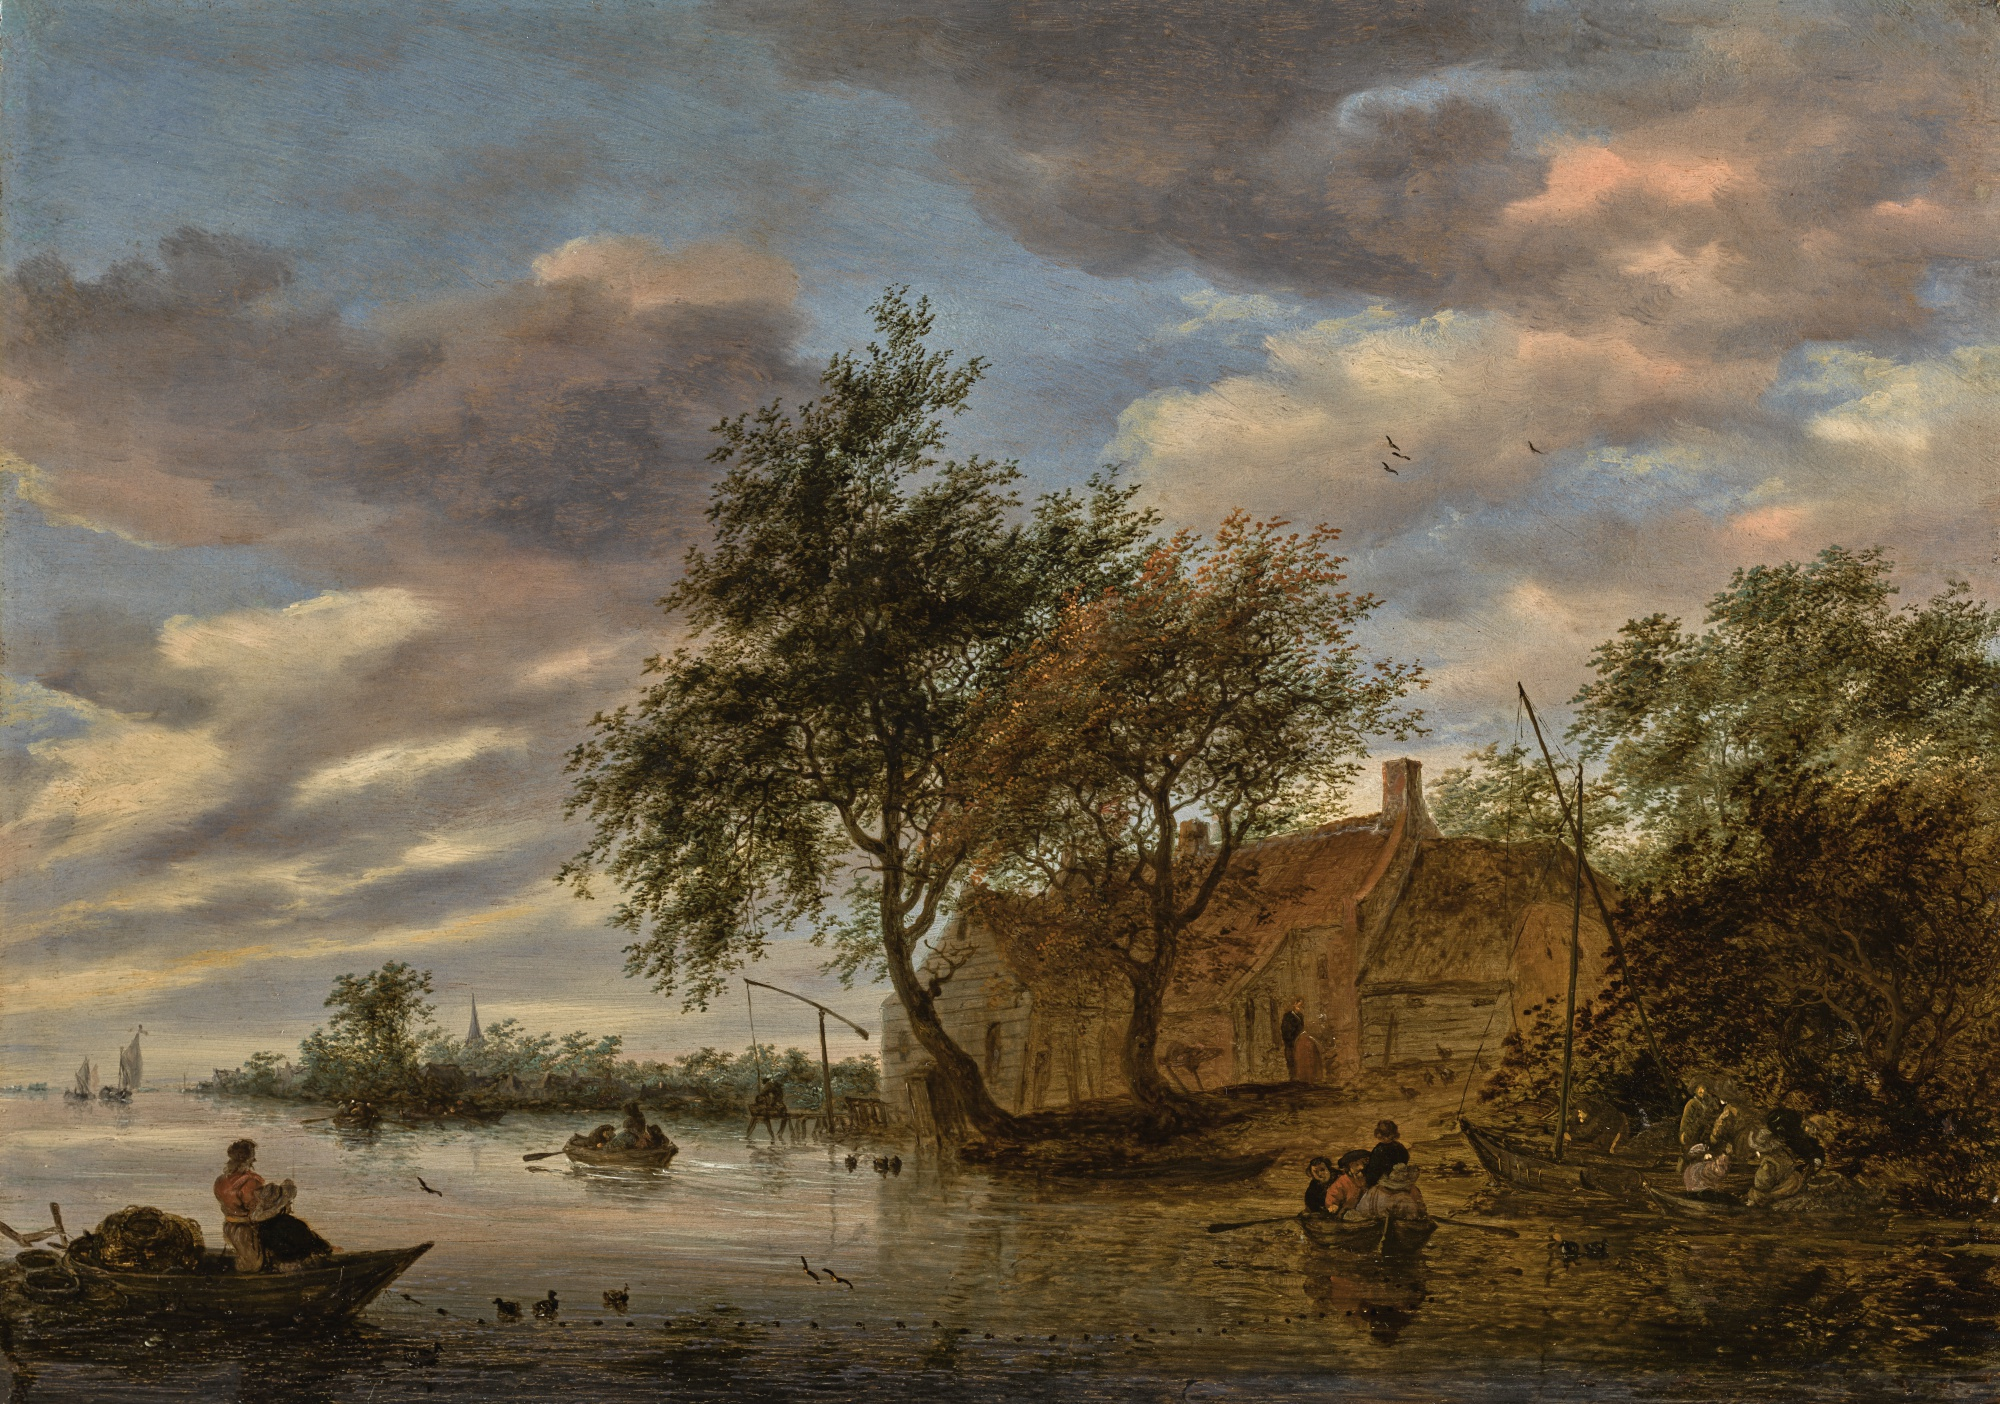 SALOMON VAN RUYSDAEL (Naarden circa 1602 - 1670 Haarlem )River landscape with figures in rowing boats, and fishermen hauling a net in the foreground